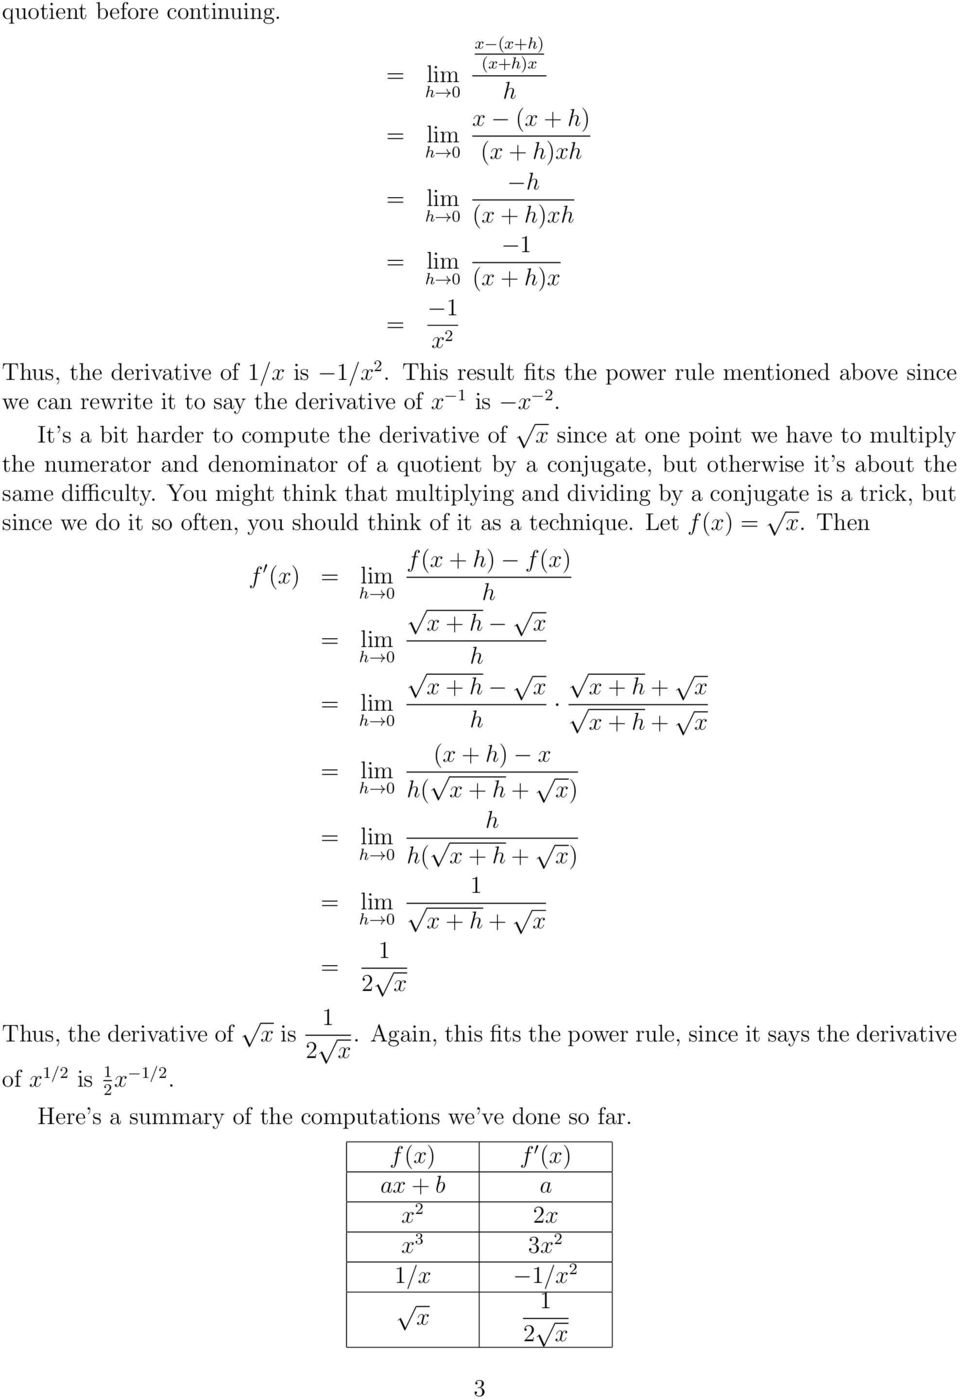 It s a bit arder to compute te derivative of x since at one point we ave to multiply te numerator and denominator of a quotient by a conjugate, but oterwise it s about te same difficulty.